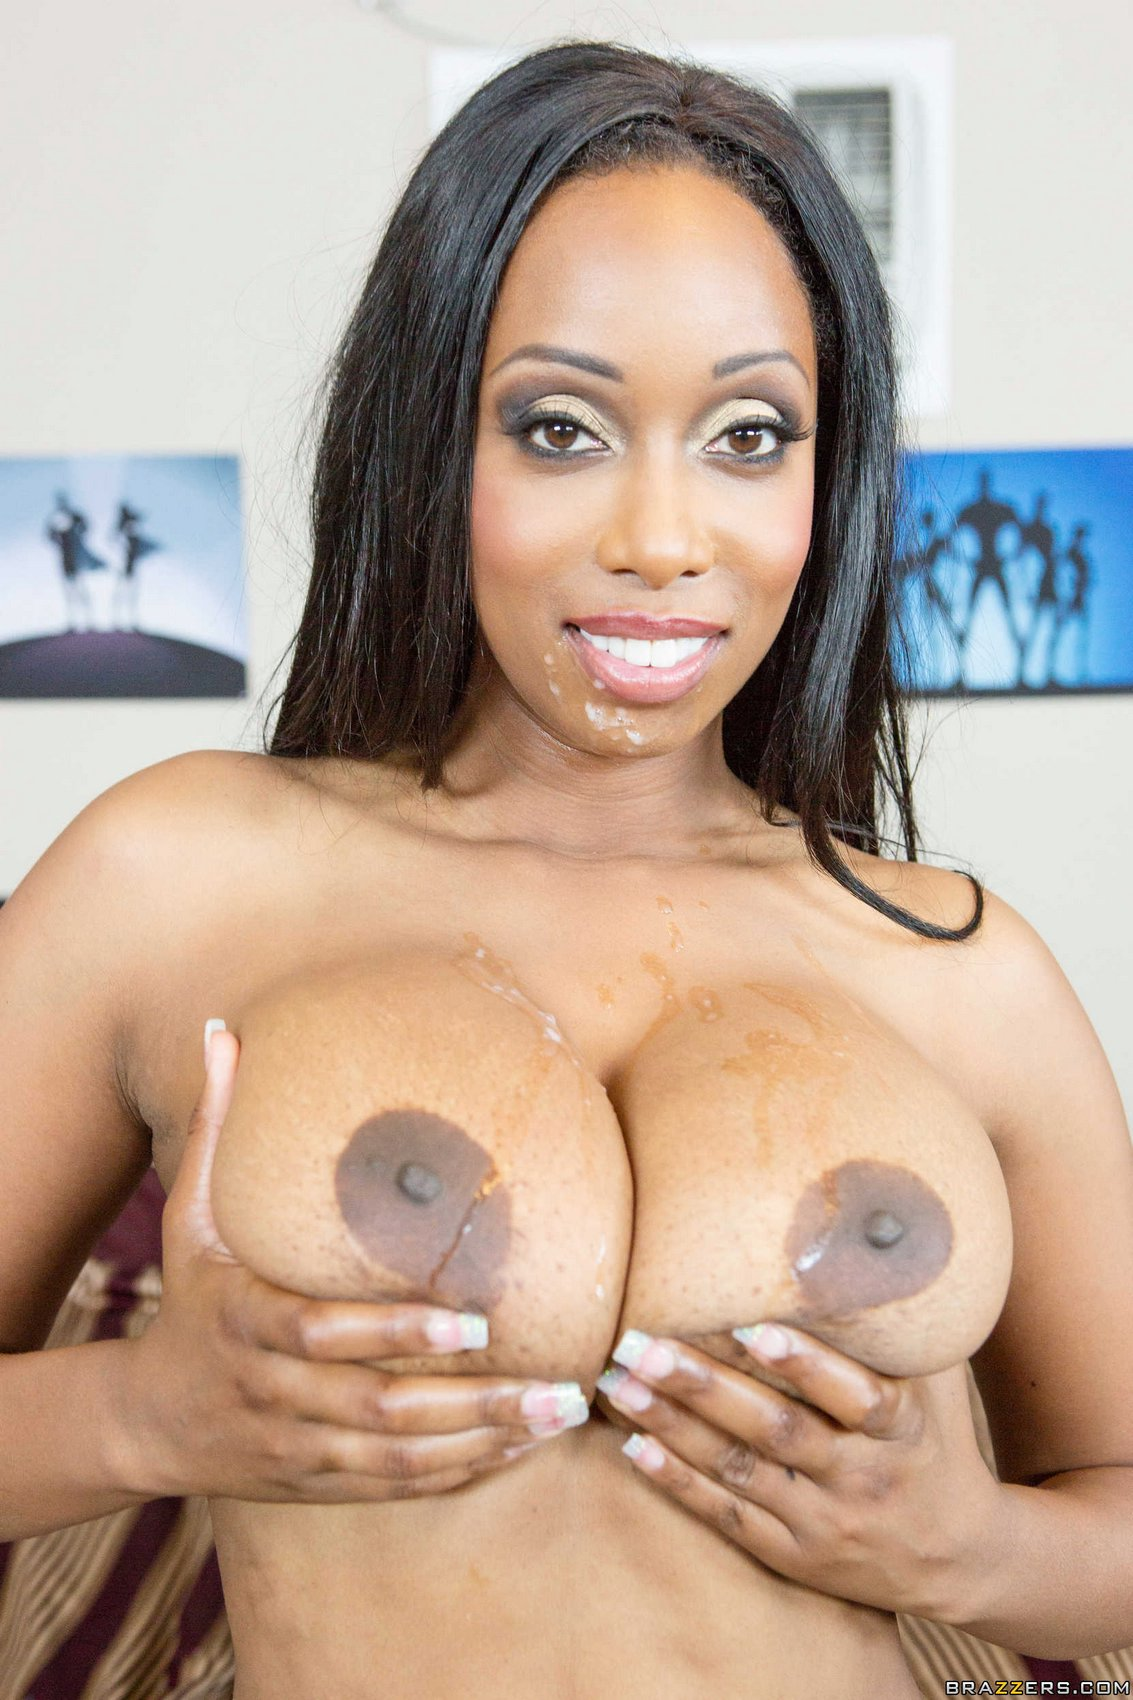 Me getting fucked by two black cocks - 3 part 6